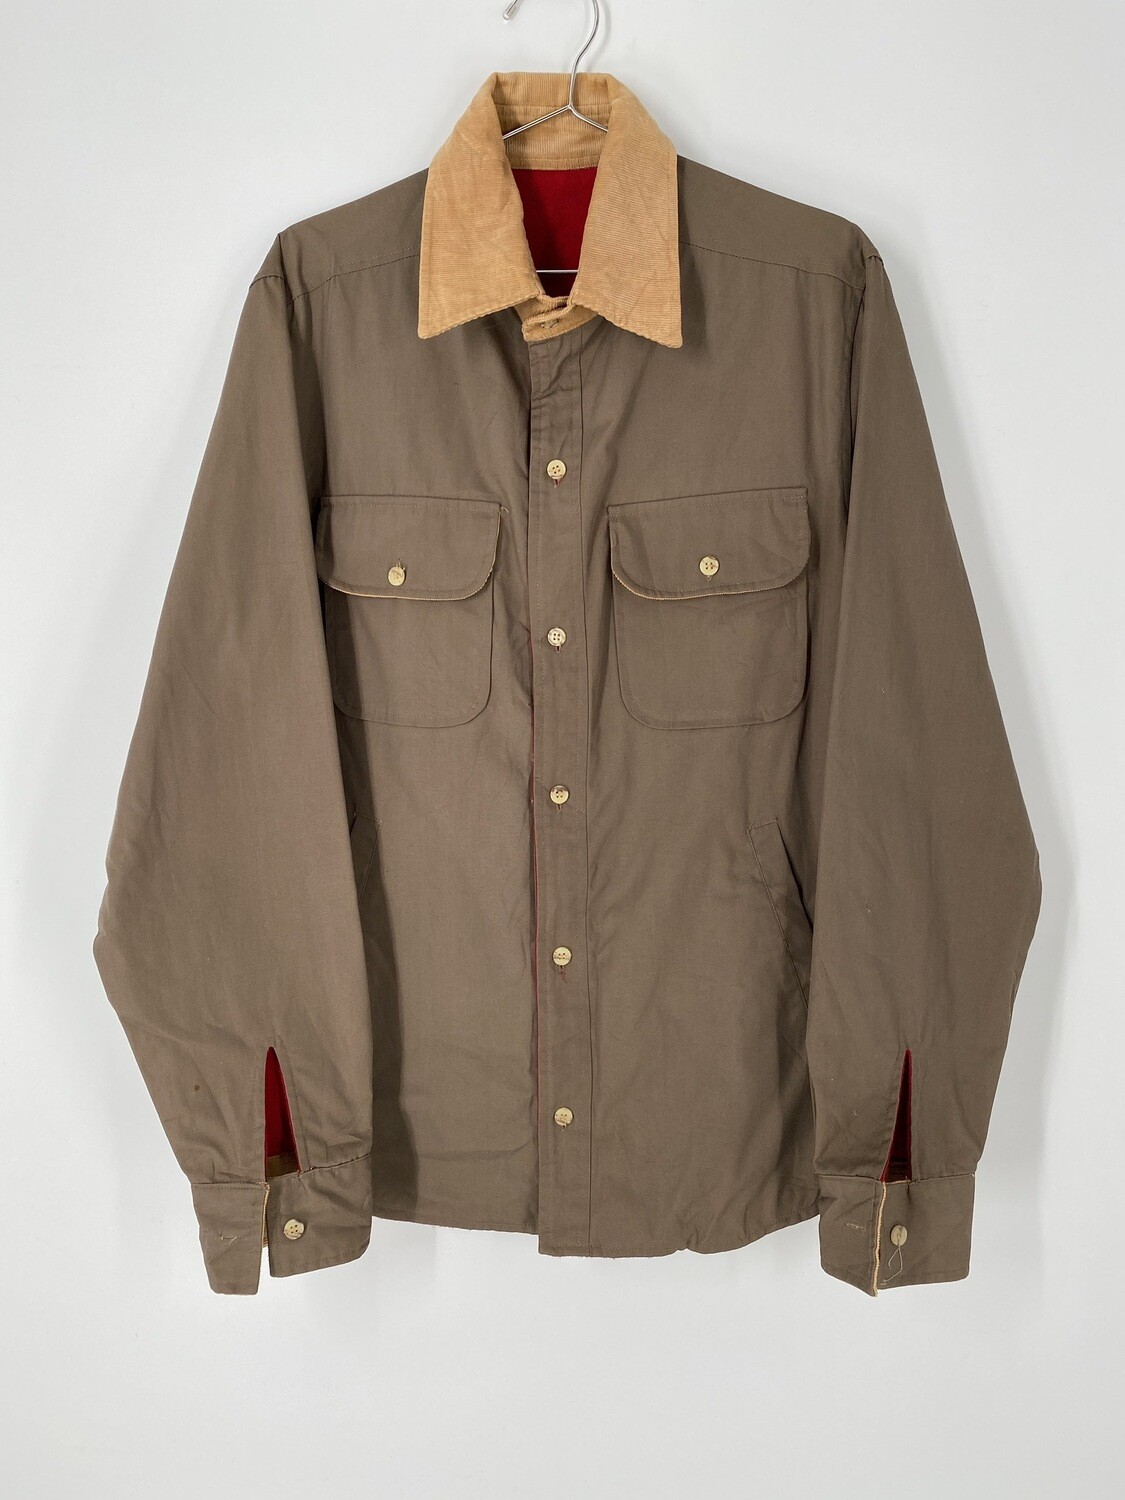 Brown And Corduroy Lightweight Jacket Size M